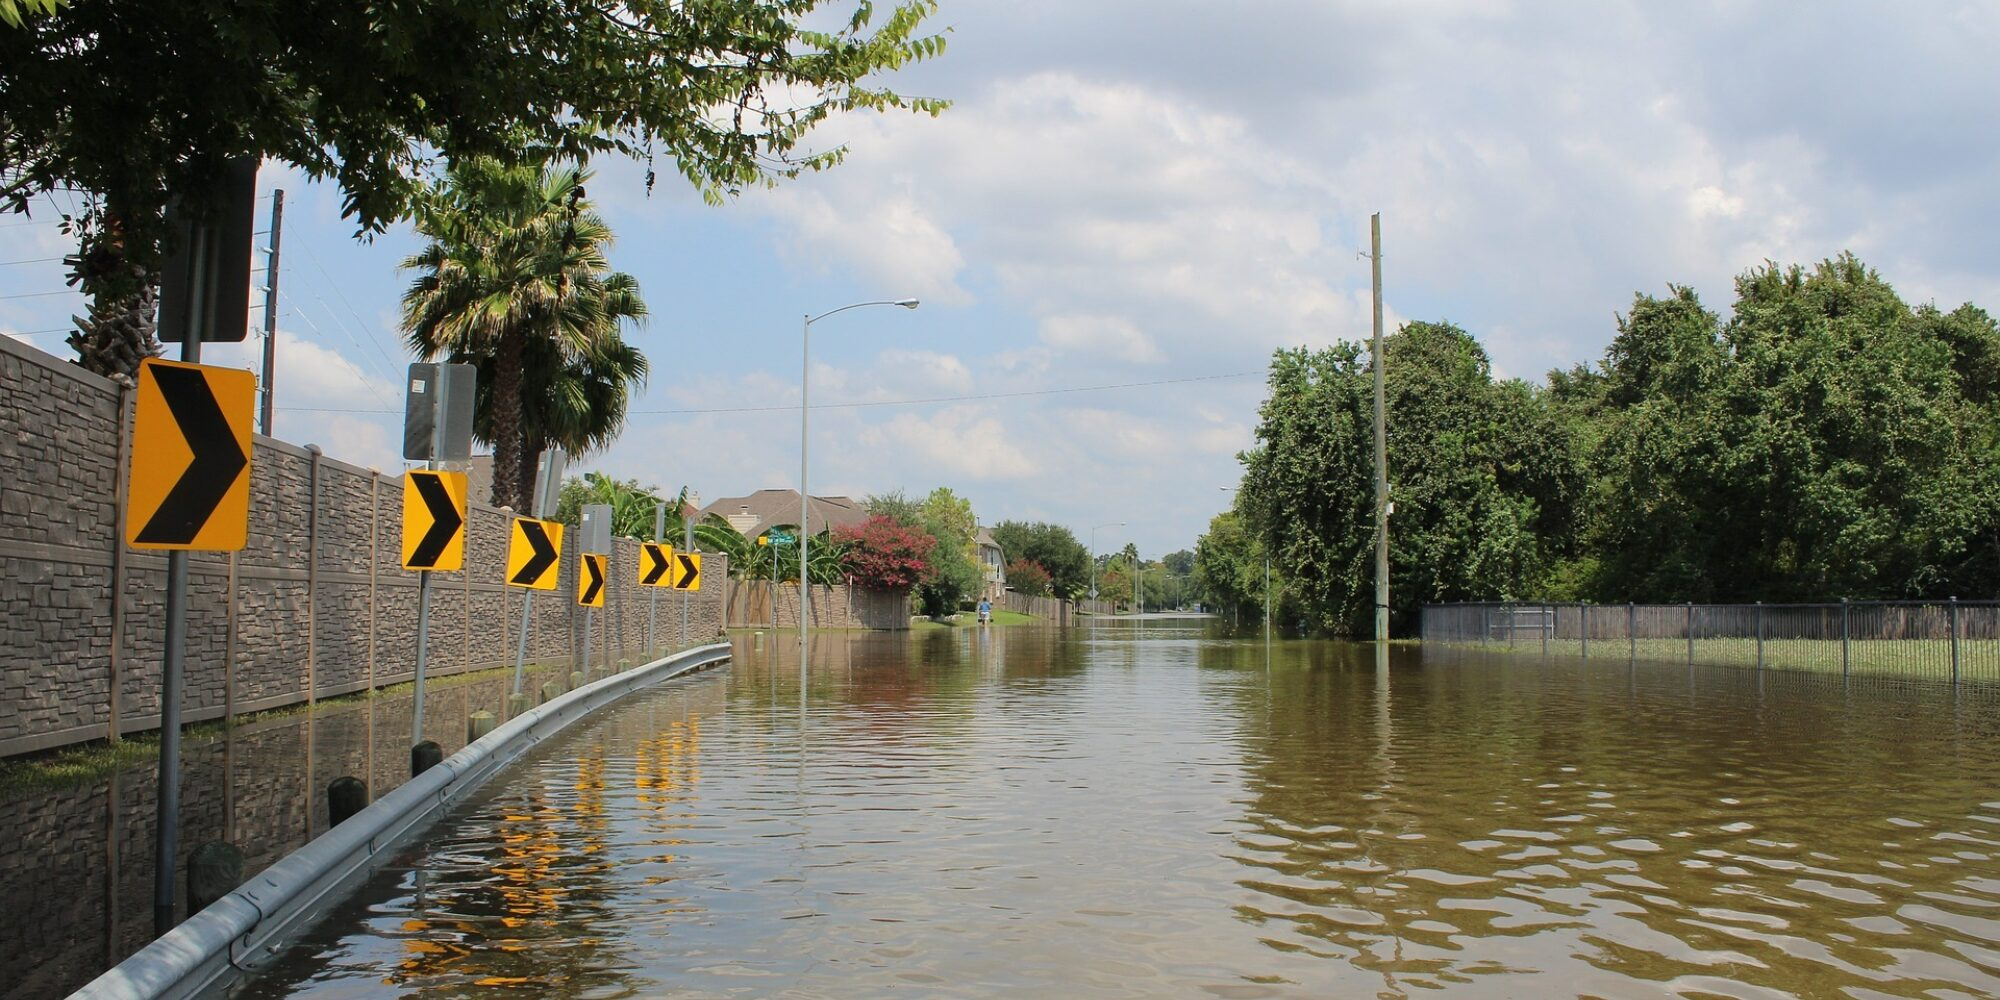 Flood Risk Governance in a Changing Climate